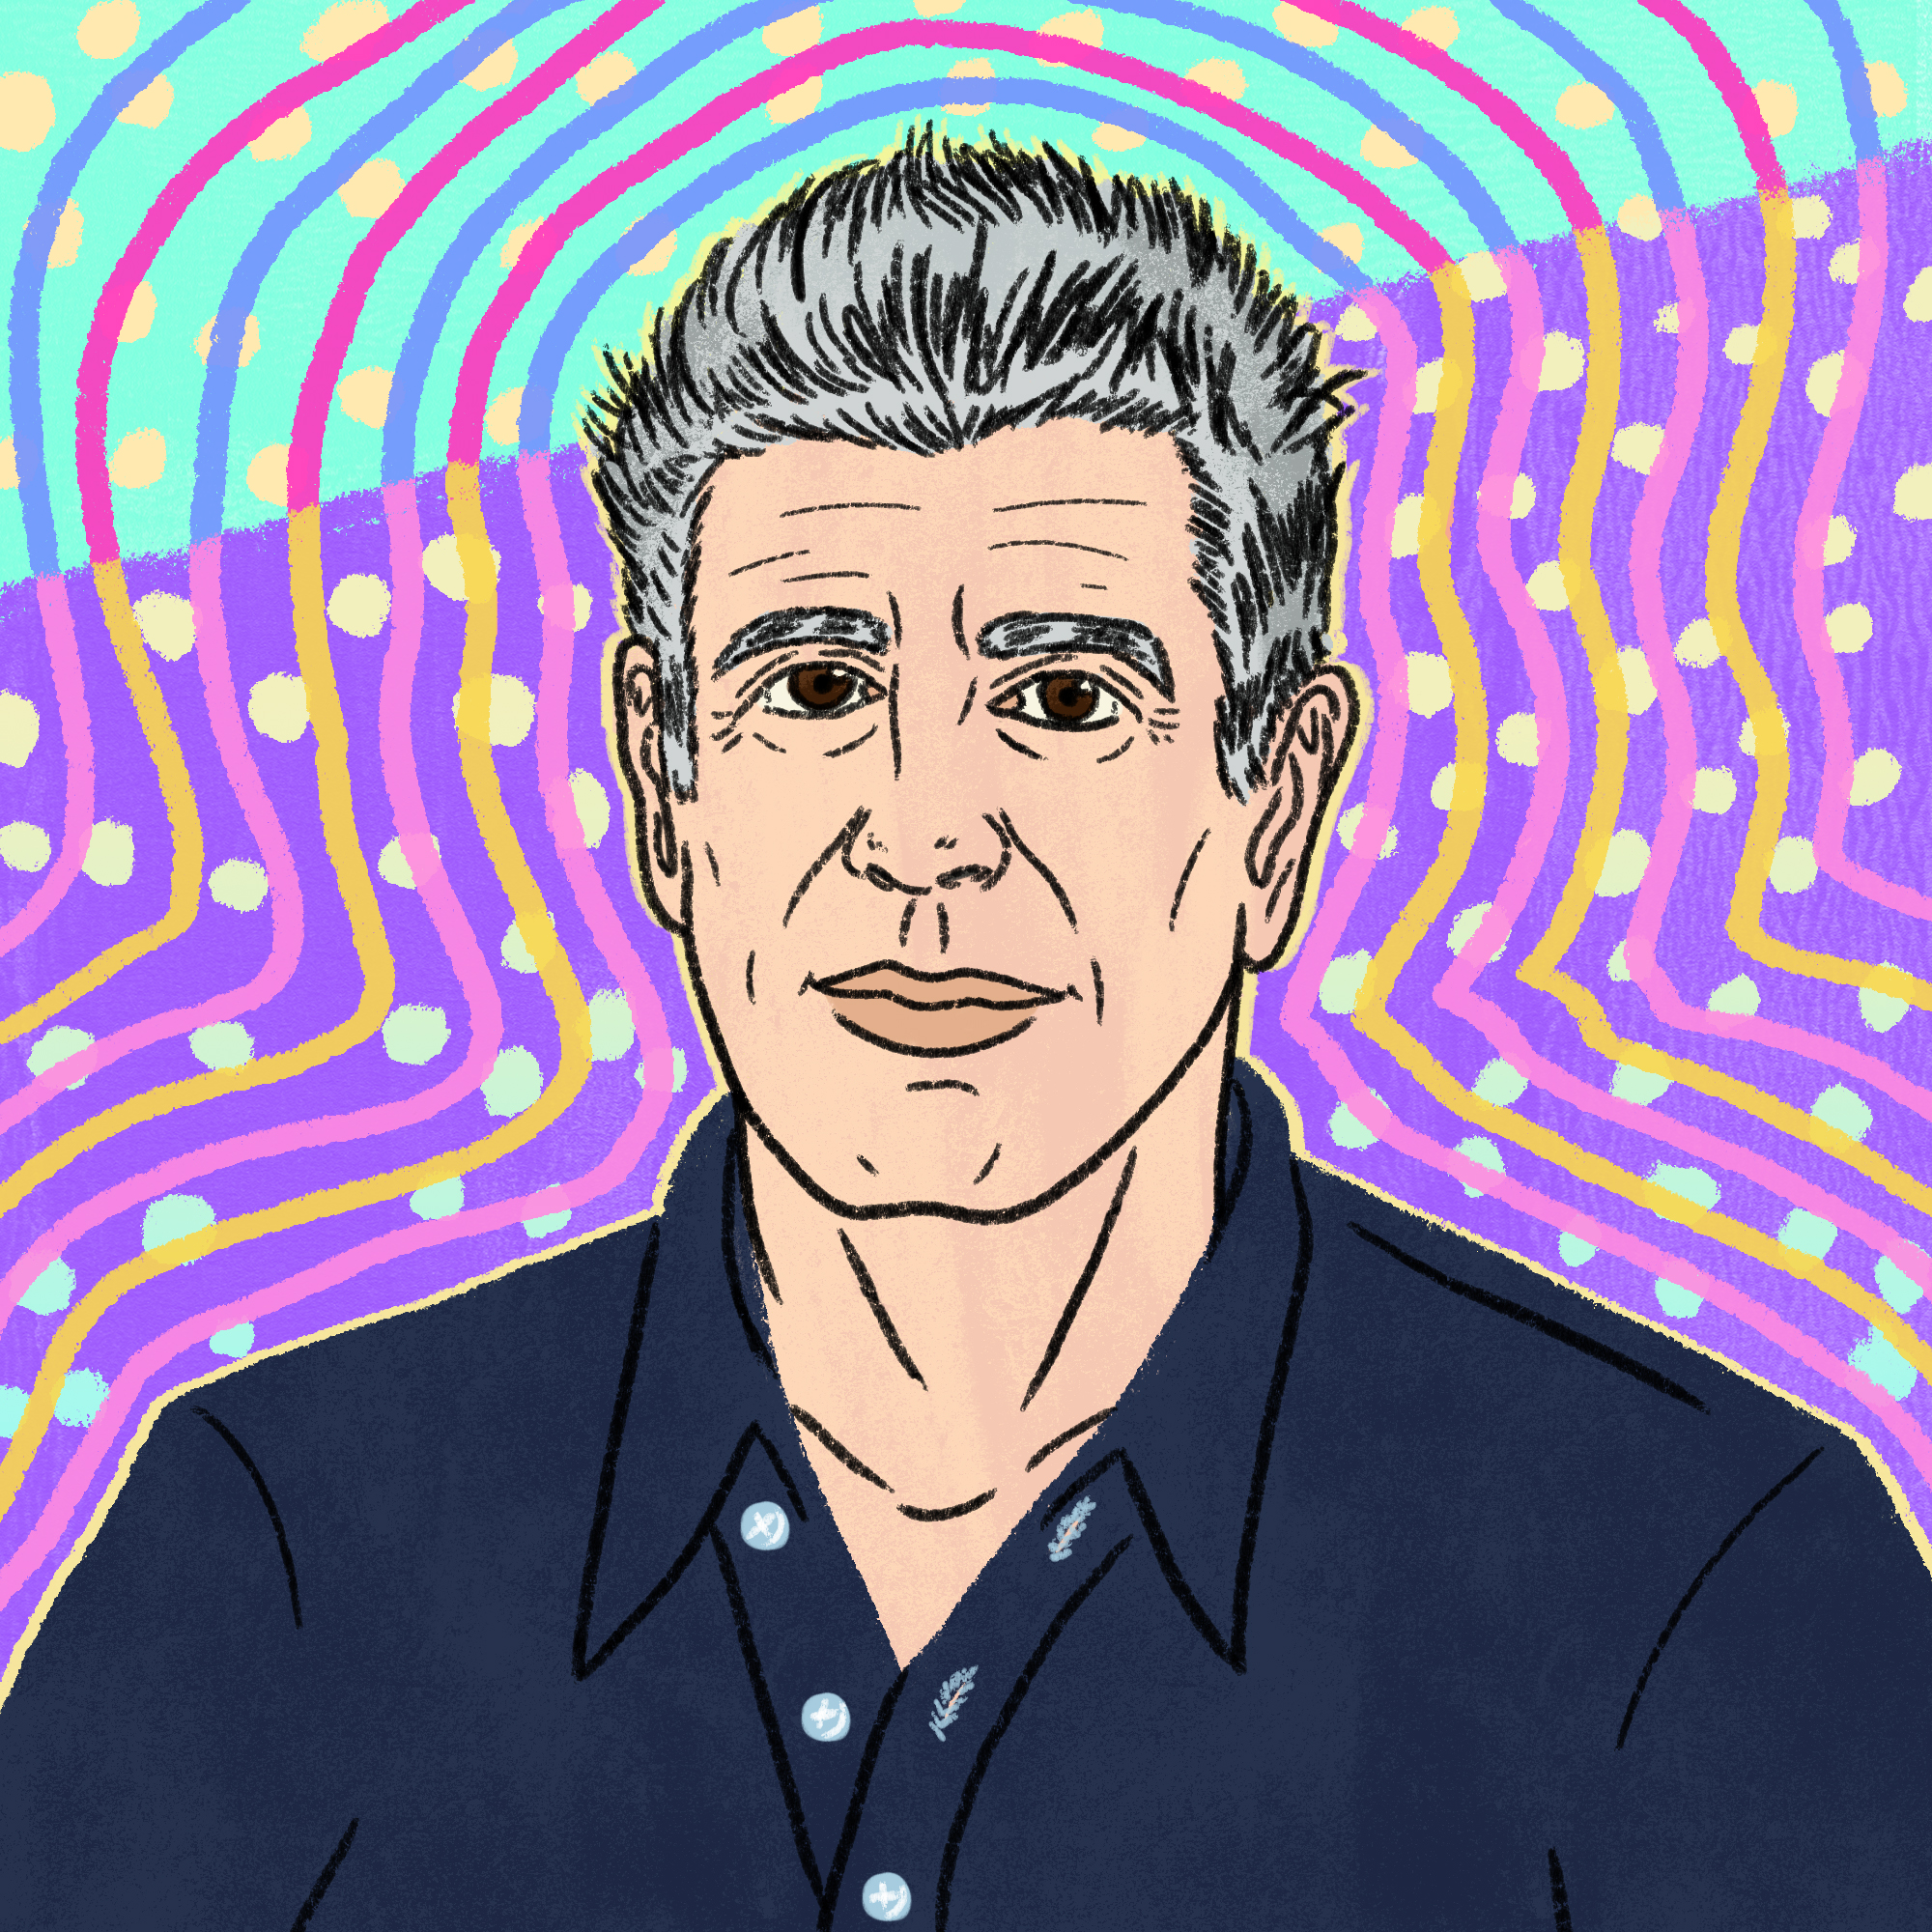 anthony_bourdain_01.jpg